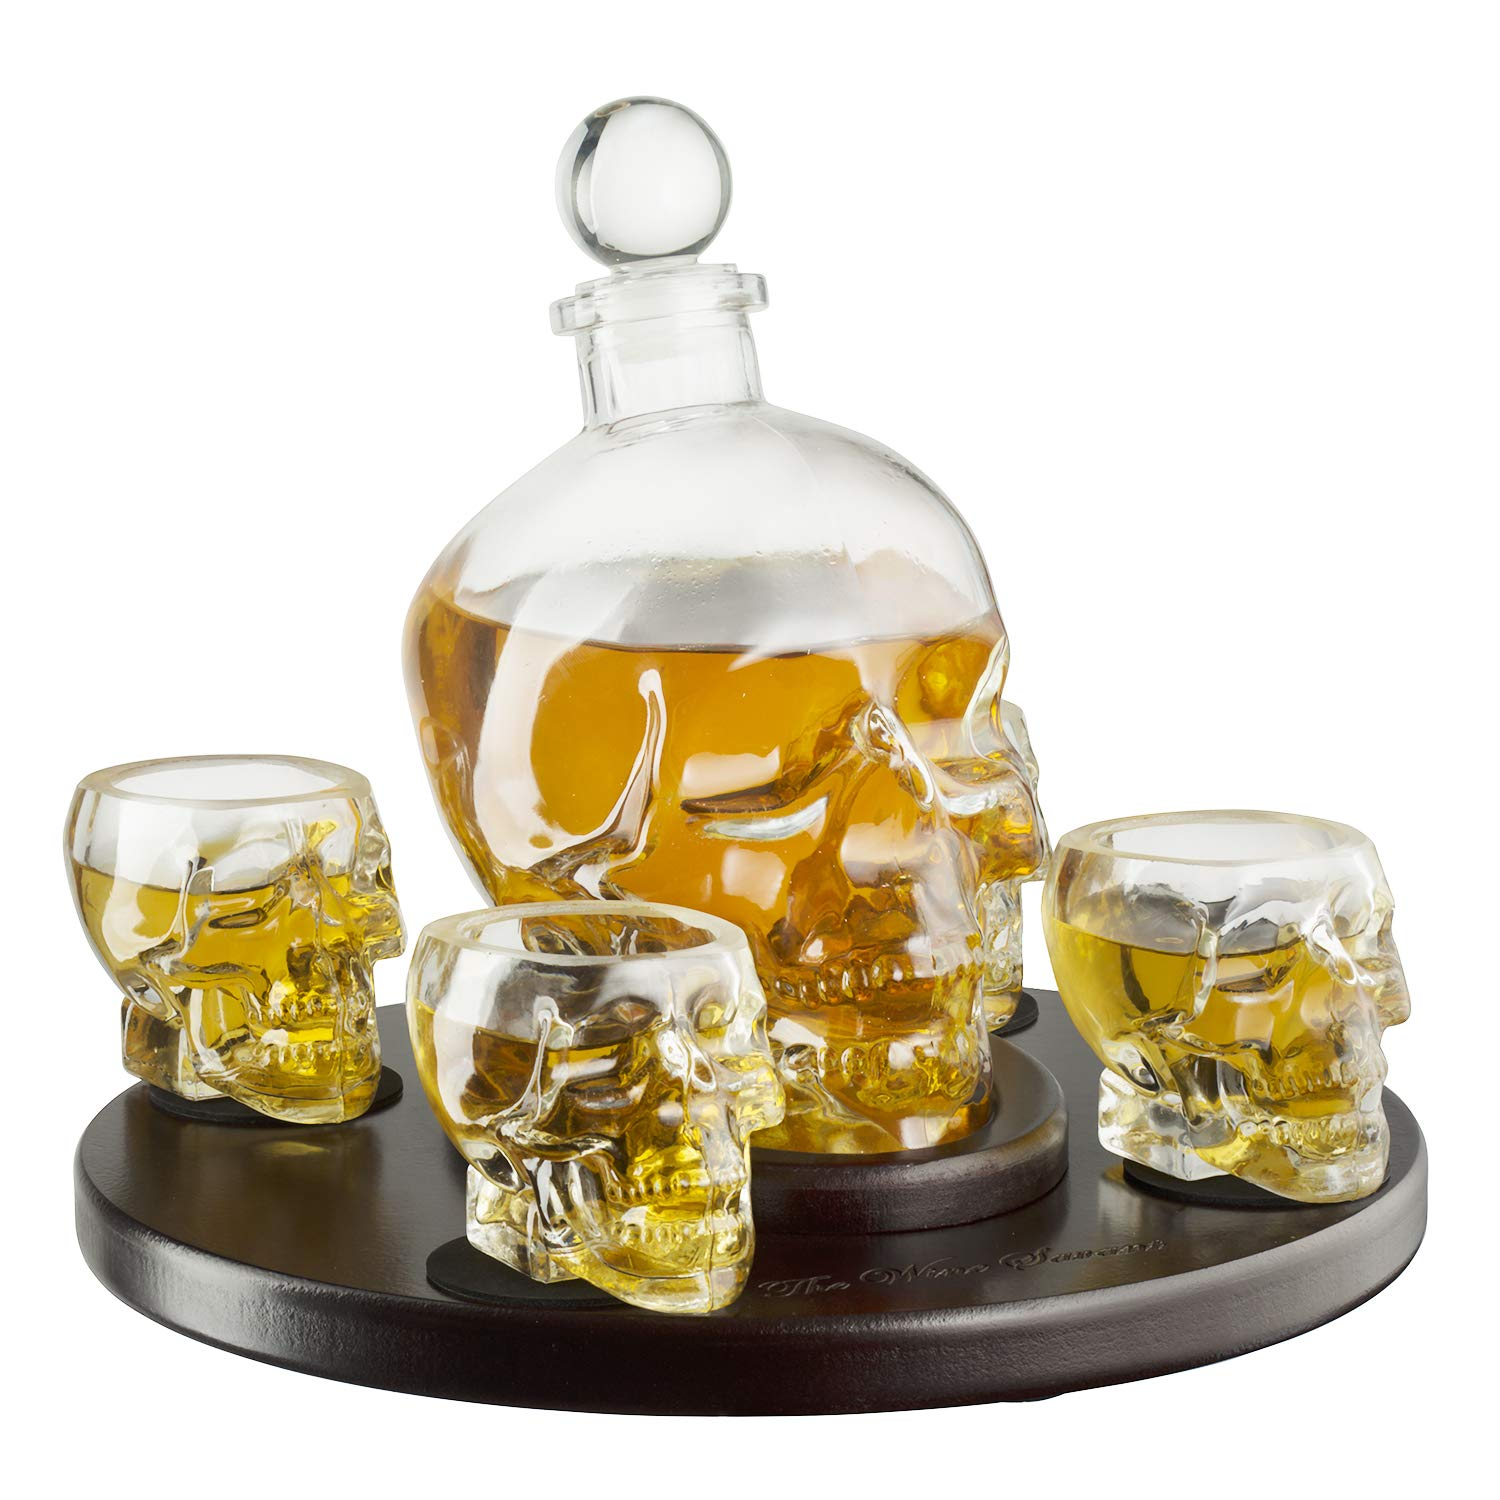 Large Skull Face Decanter with 4 Skull Shot Glasses and Beautiful Wooden Base - By The Wine Savant Use Skull Head Cup For A Whiskey, Scotch and Vodka Shot Glass, 25 Ounce Decanter 3 Ounces Shot Glass by The Wine Savant